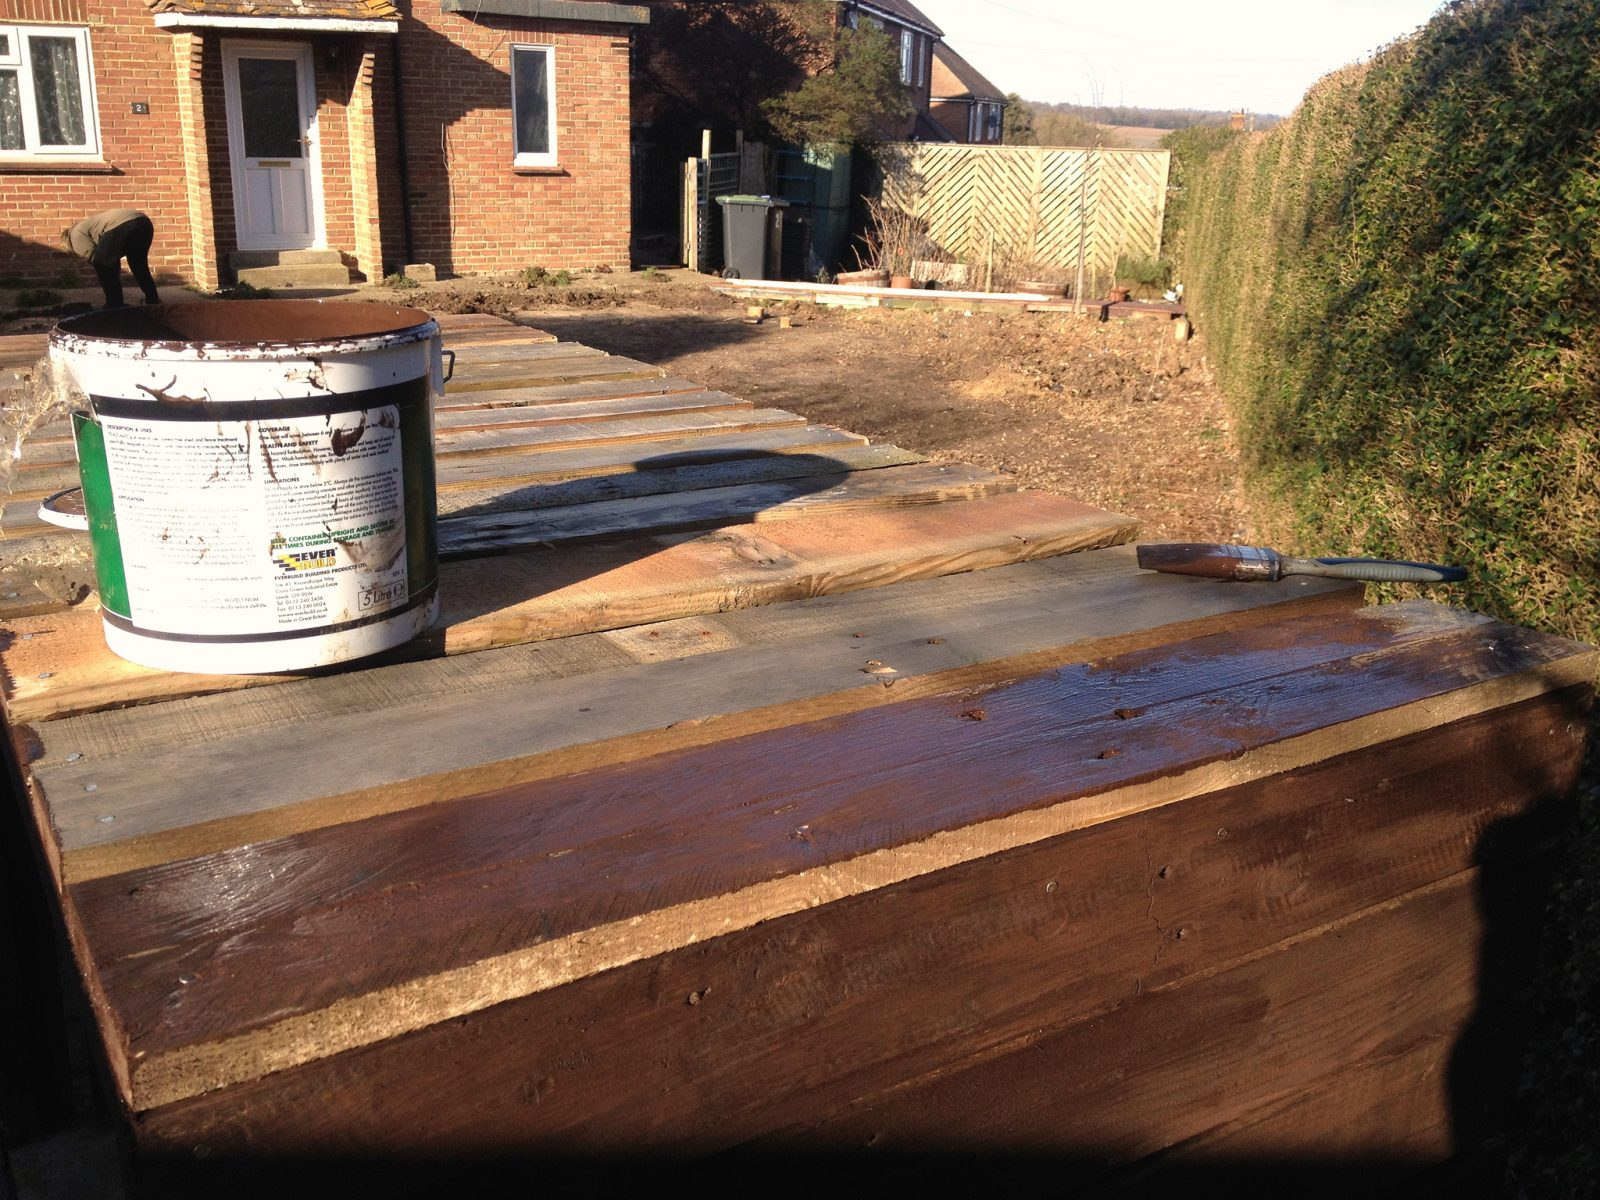 Staining the wood to protect it